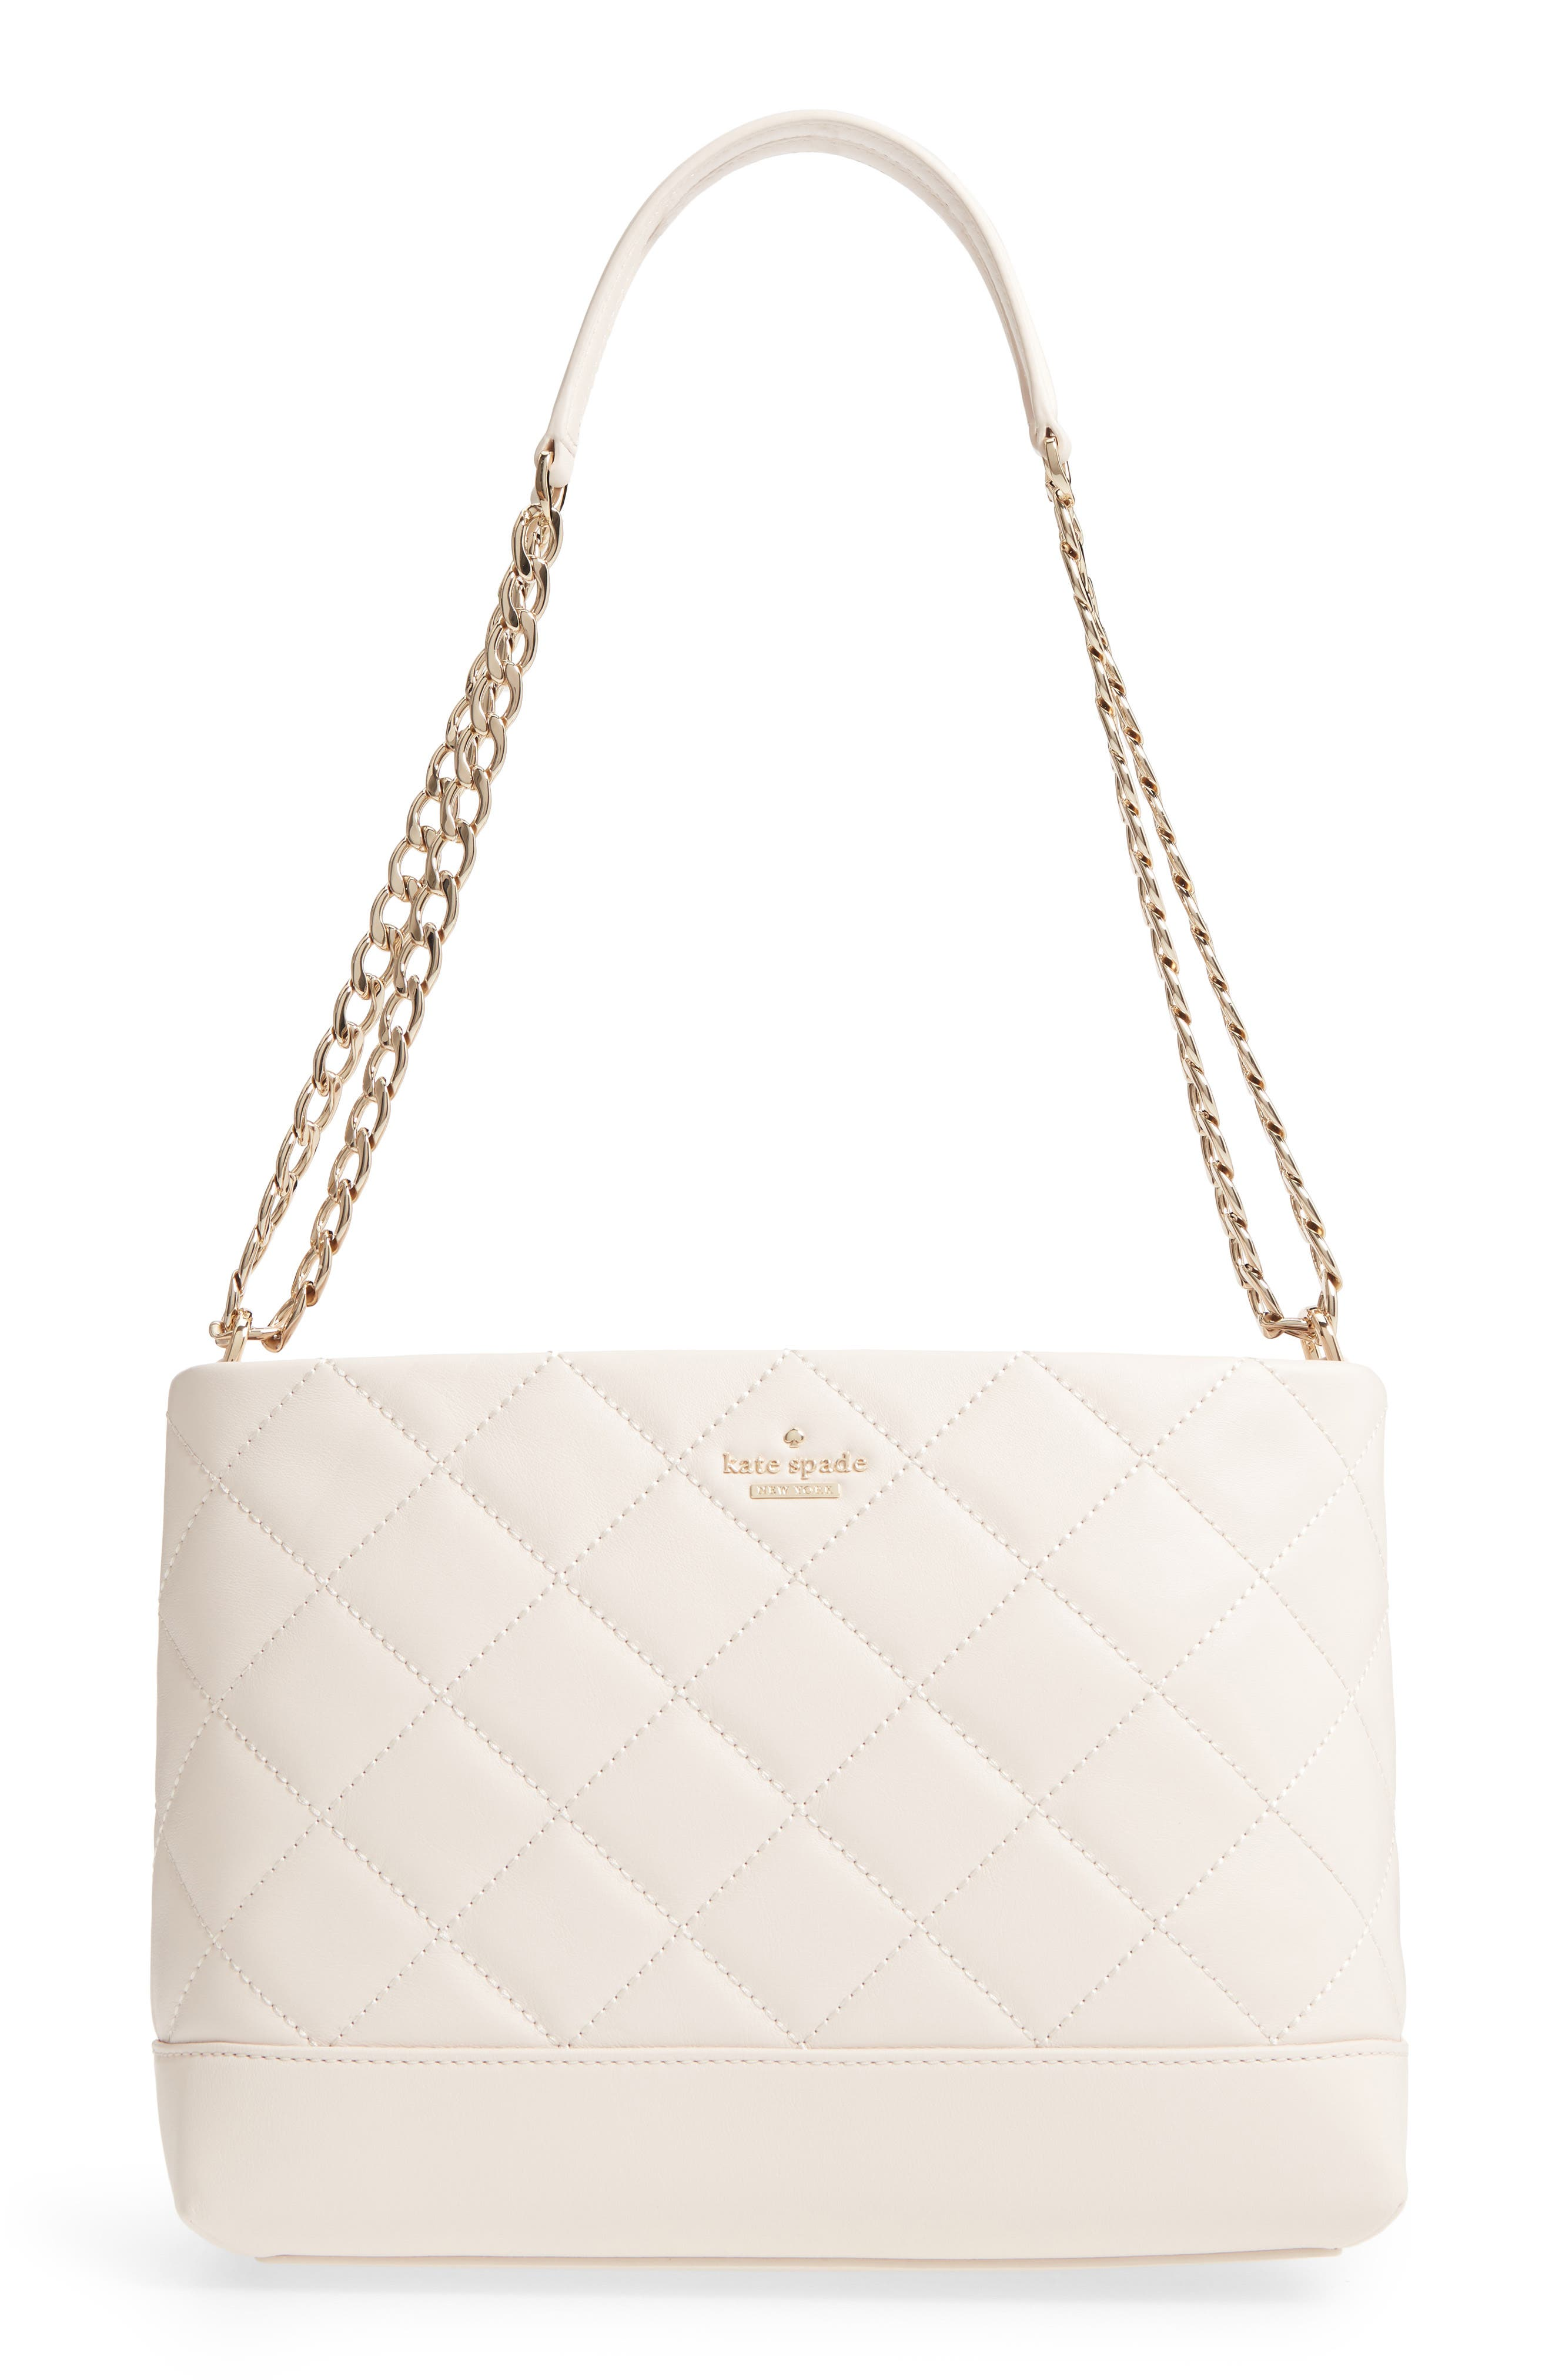 emerson place lorie quilted leather shoulder bag,                         Main,                         color, 900